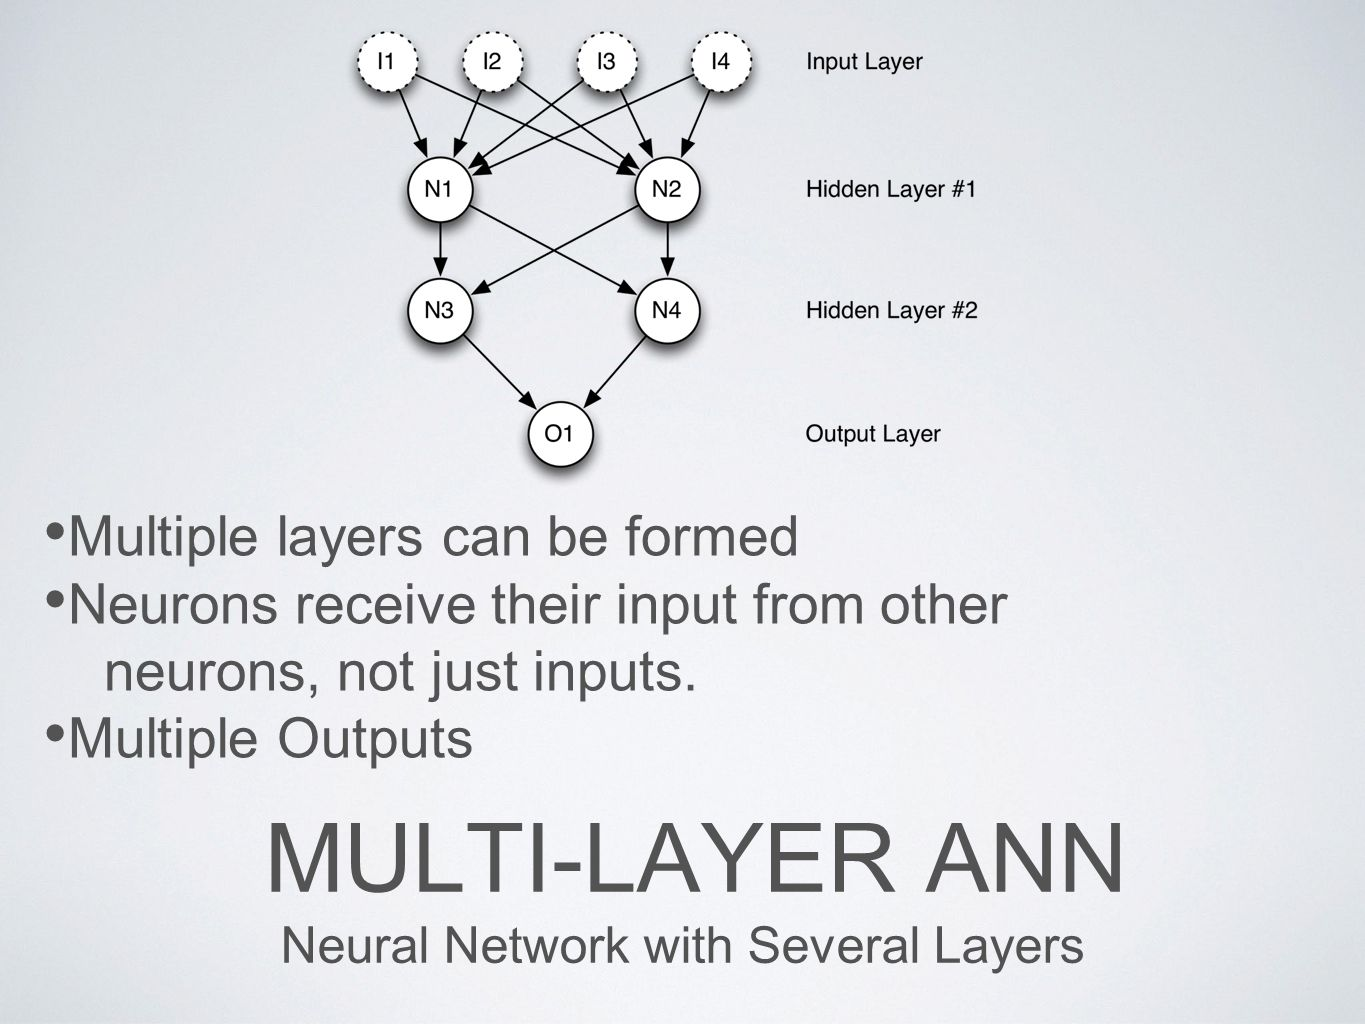 Neural Network with Several Layers